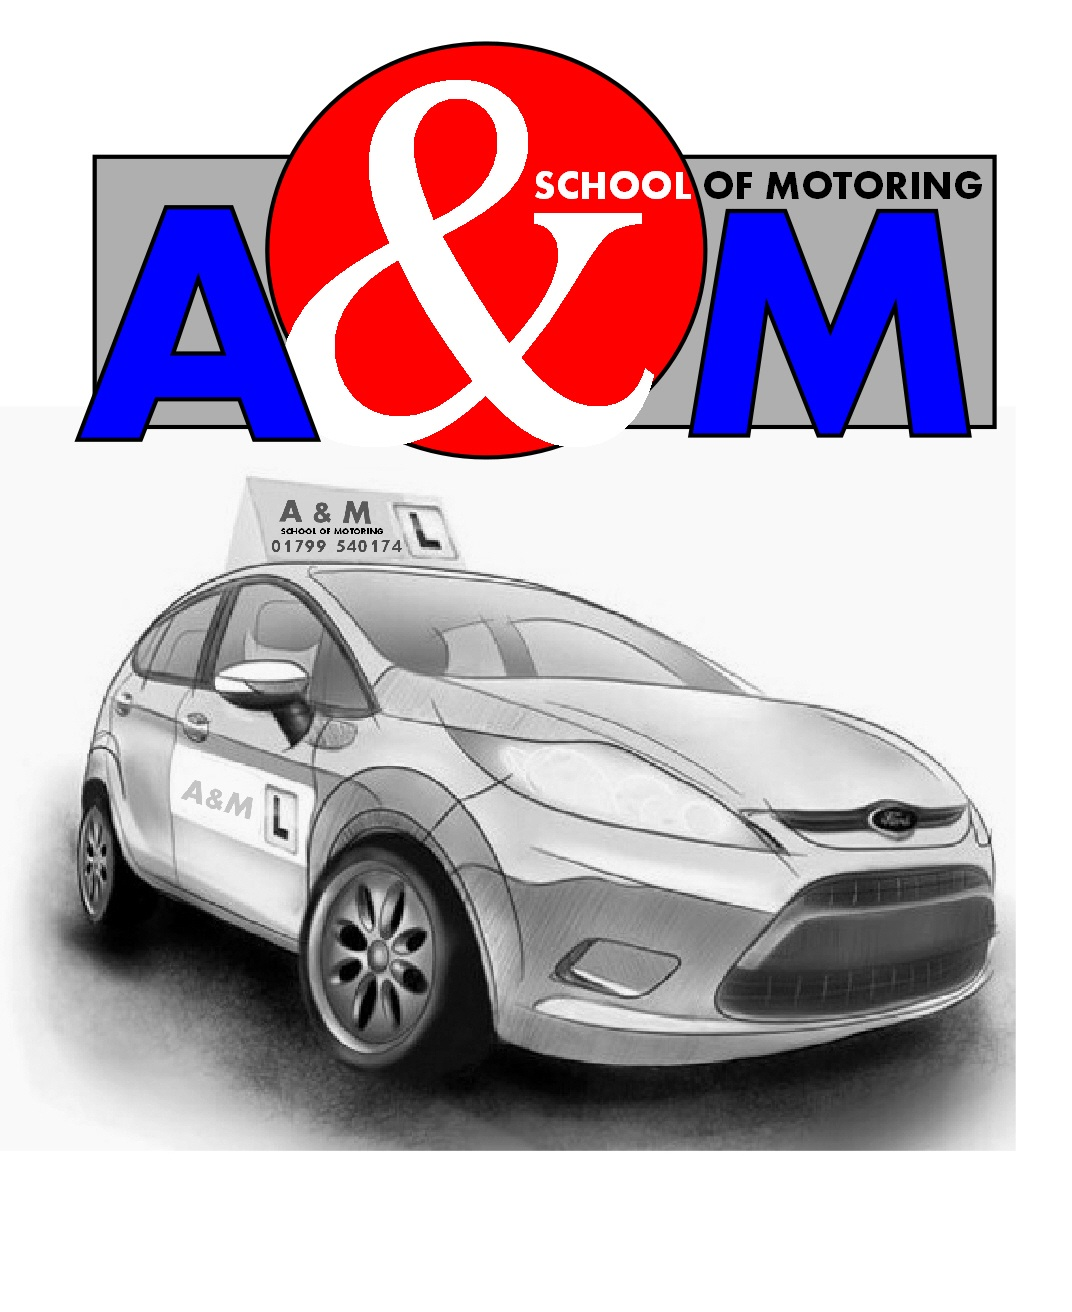 A & M school of motoring Photo